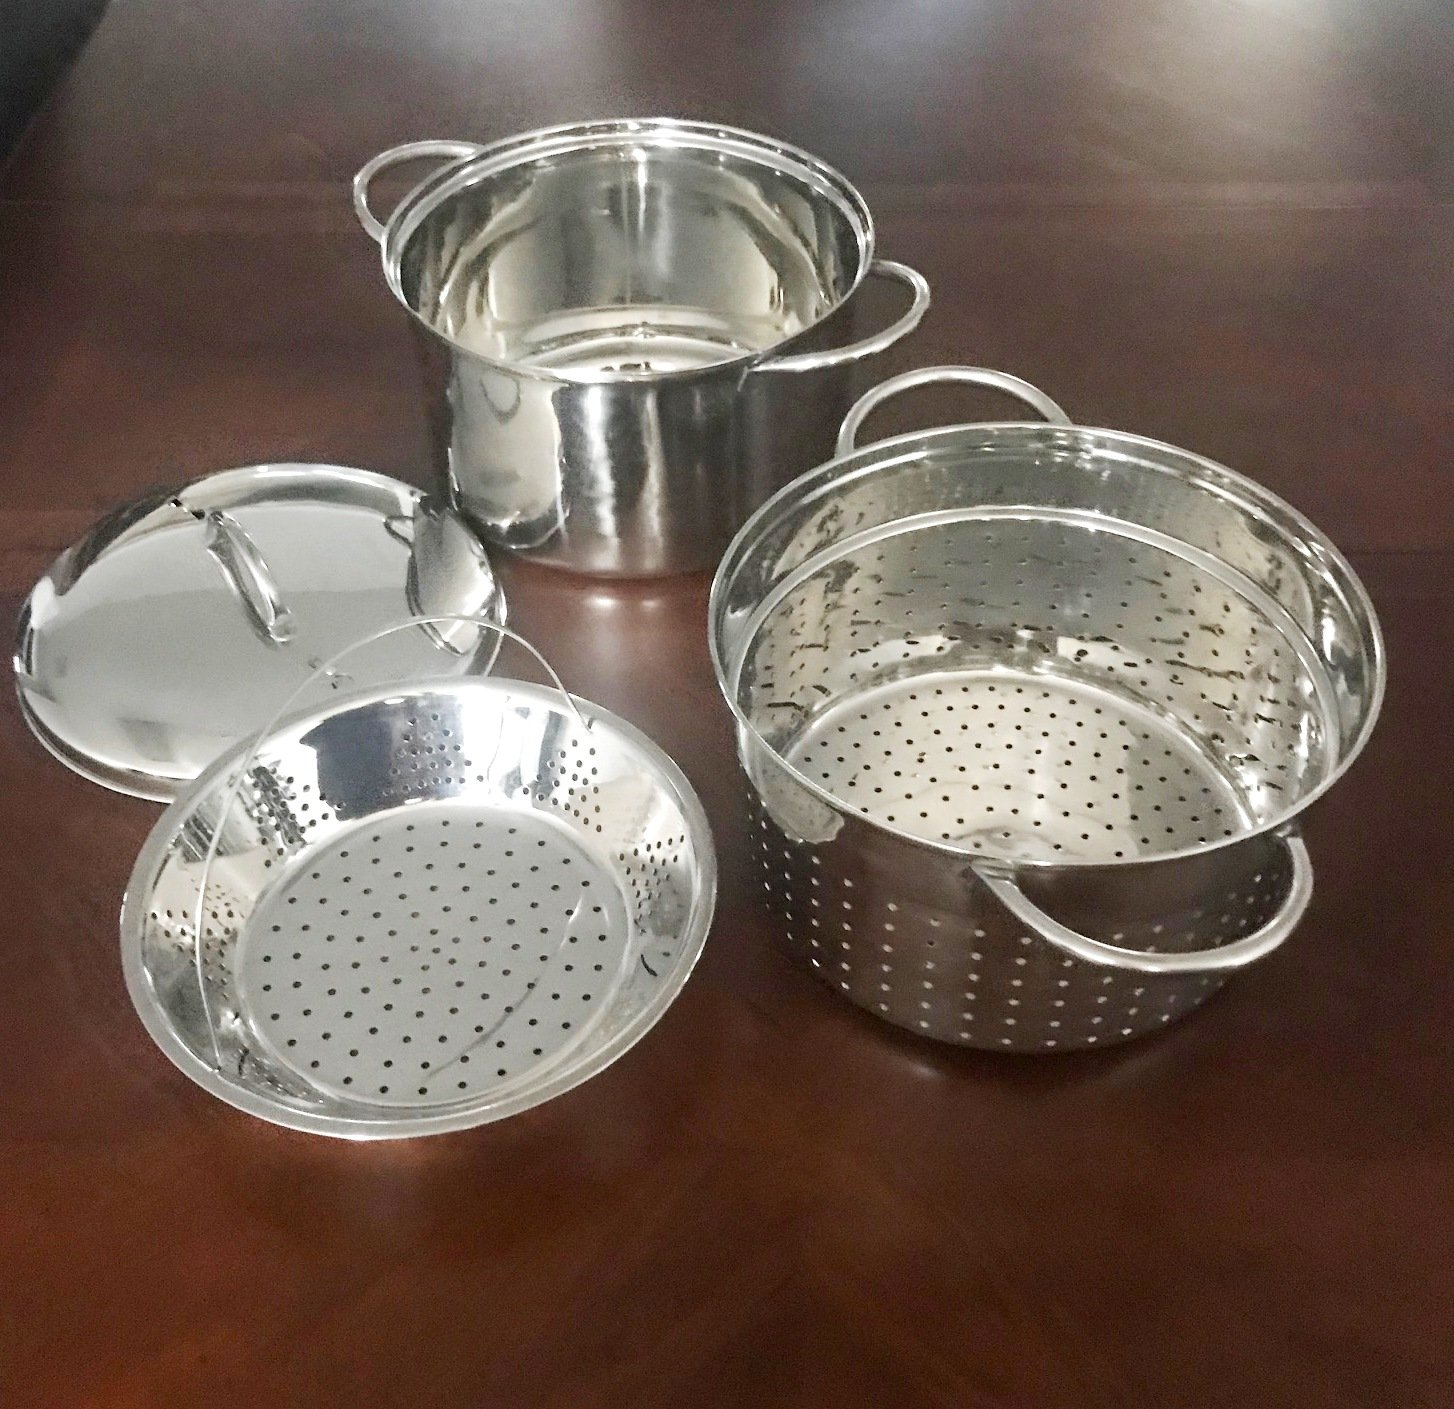 Stainless Steel 4 Piece Multi-Cookware Set - Stainless Steel Pasta Cooker